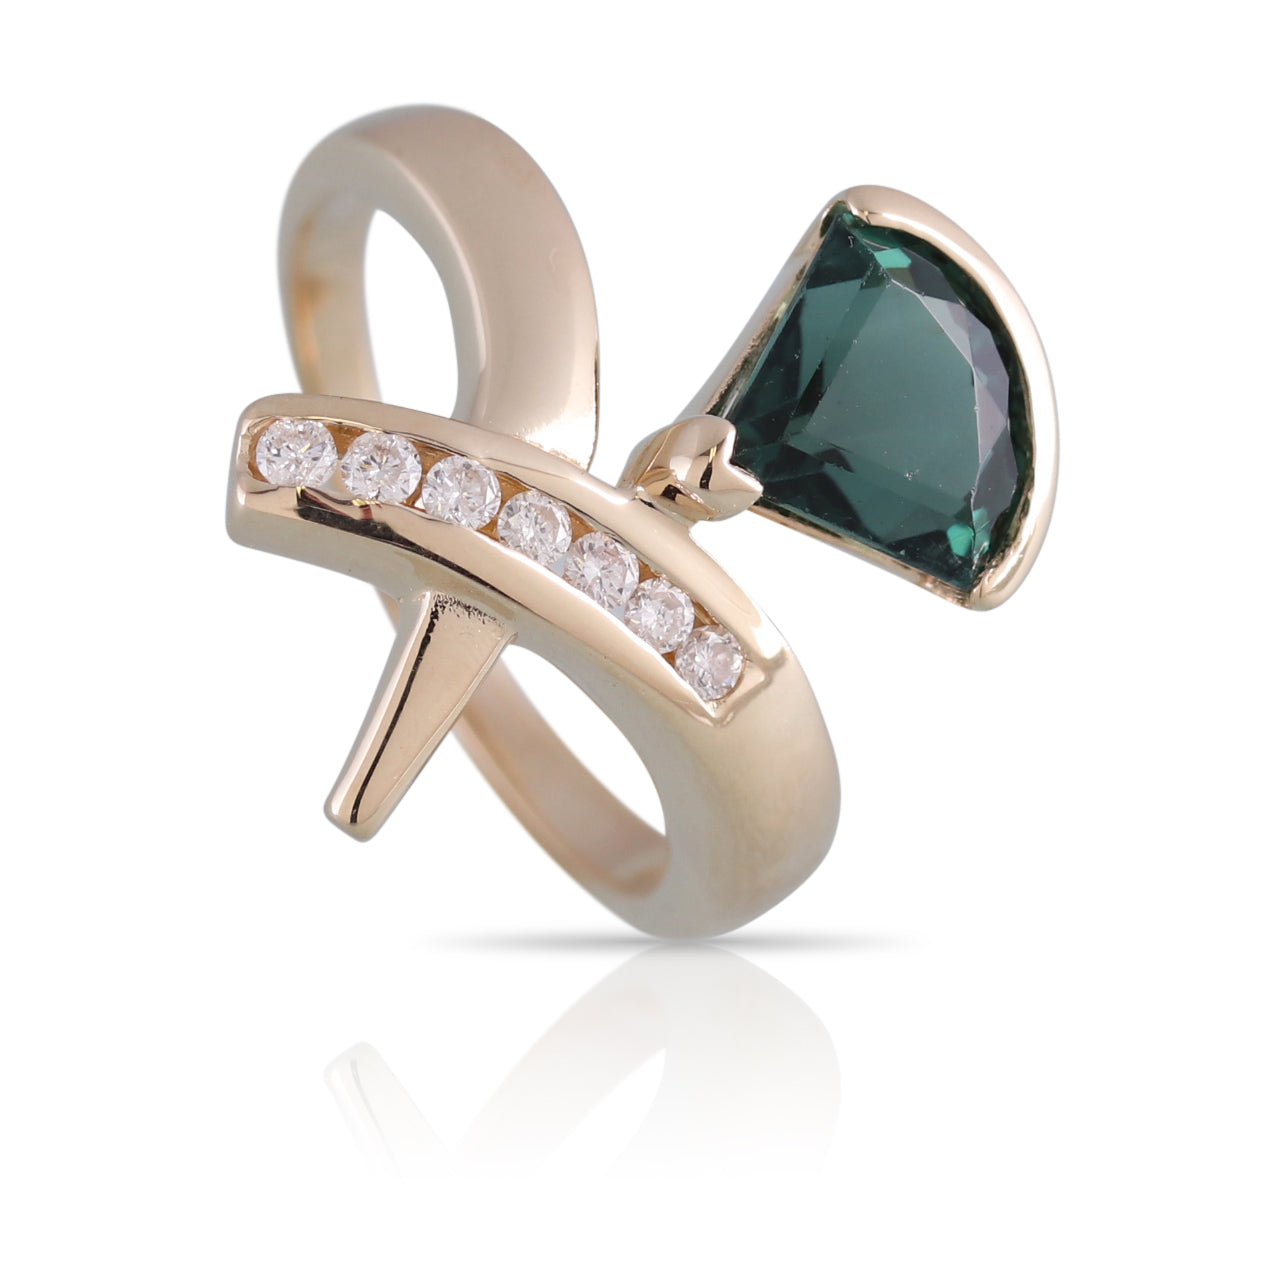 Green Tourmaline and Diamond Ring | The Beau